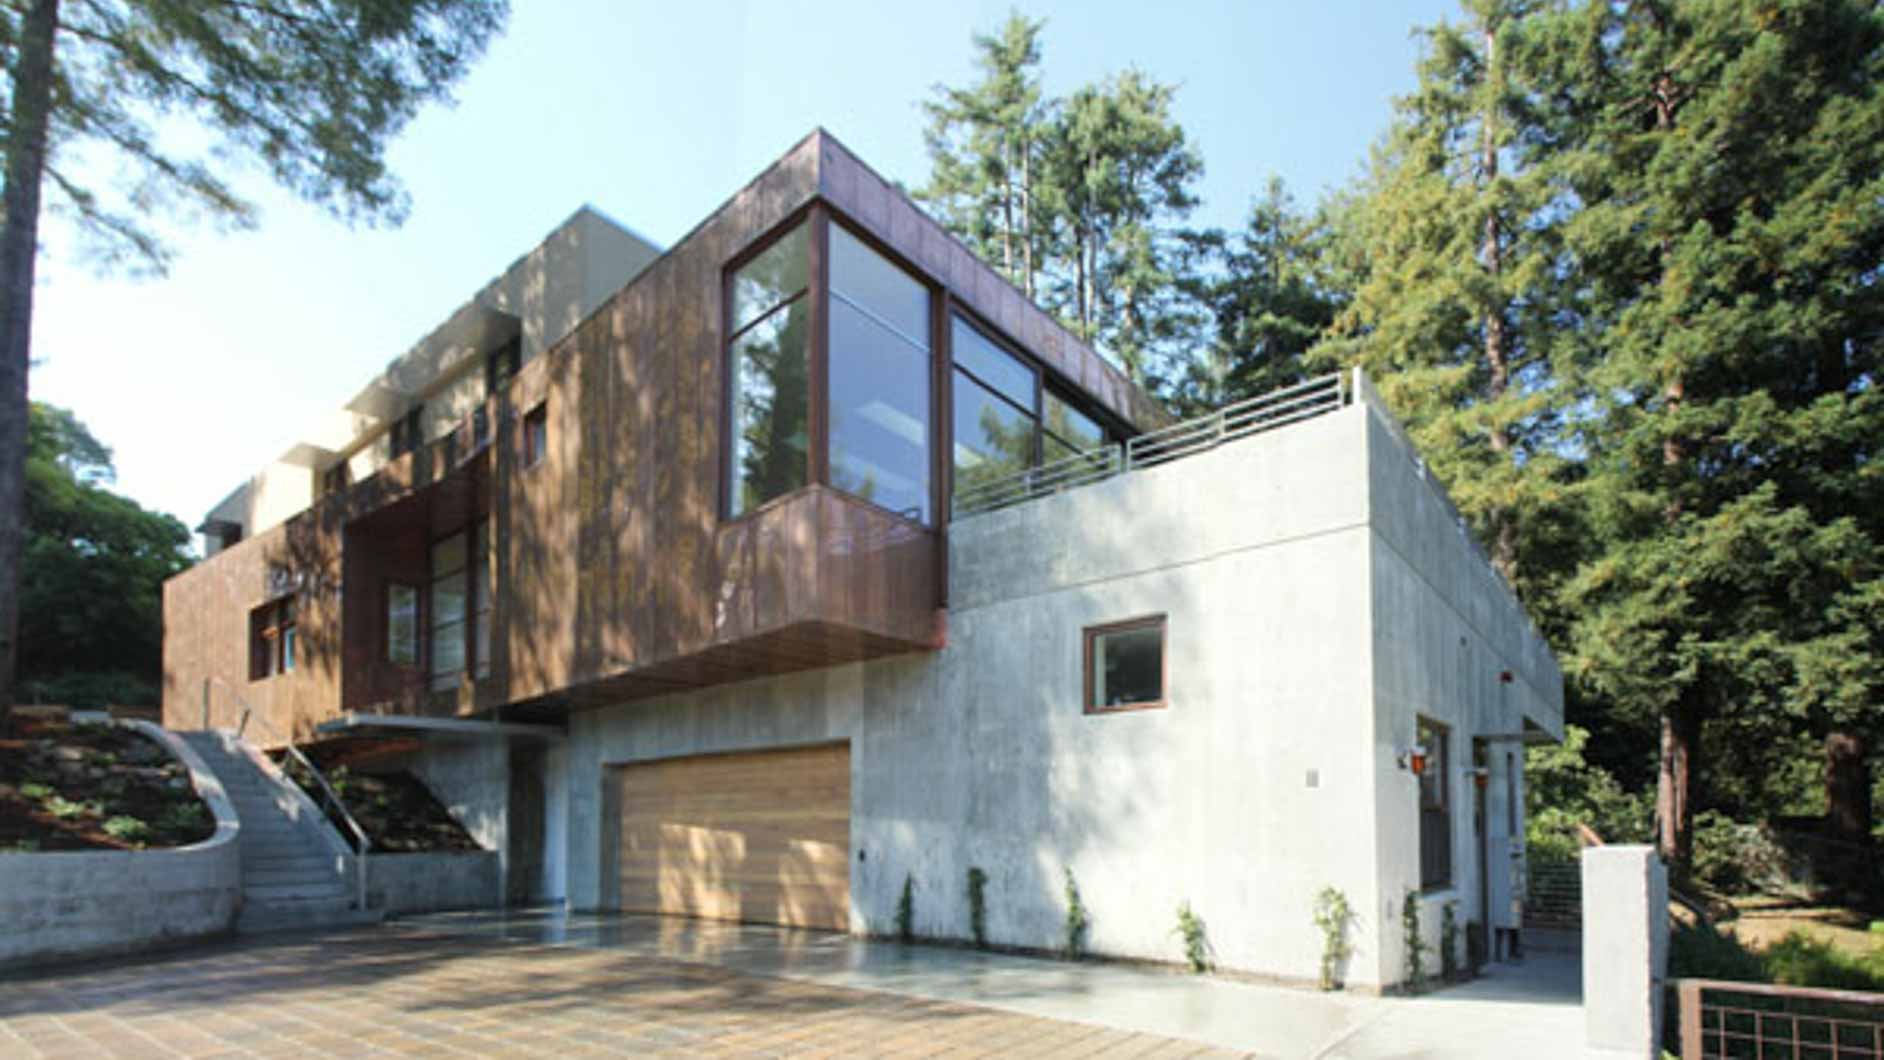 Rammed Earth Homes for Sustainability